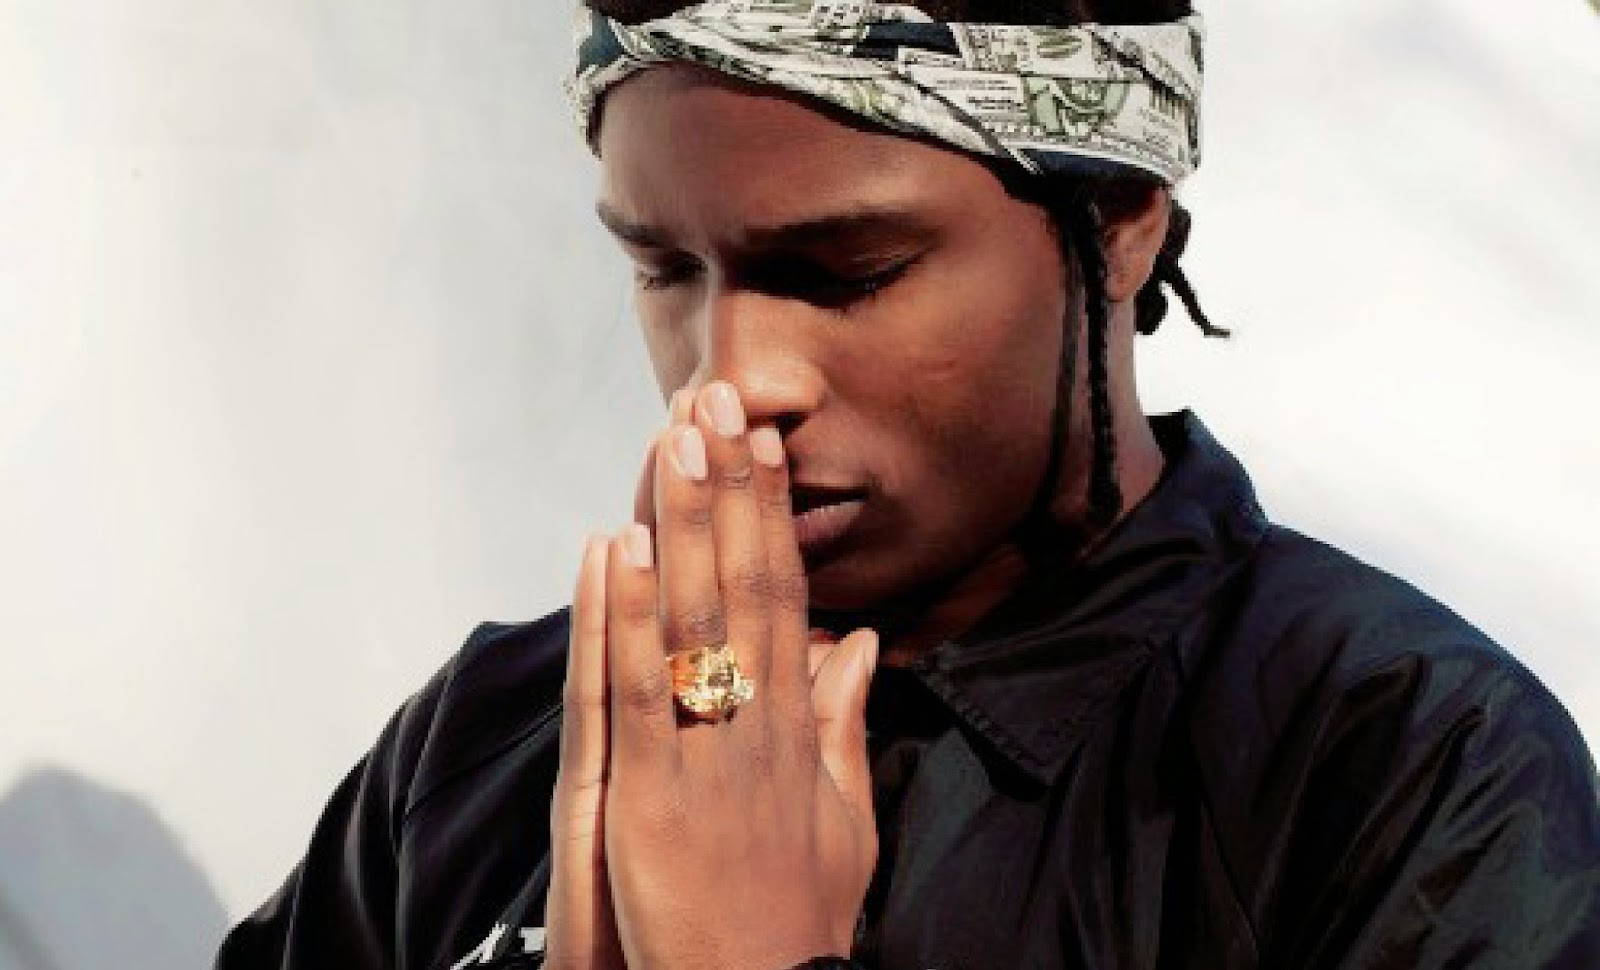 ASAP ROCKY SUCCESS RAPPING HOW